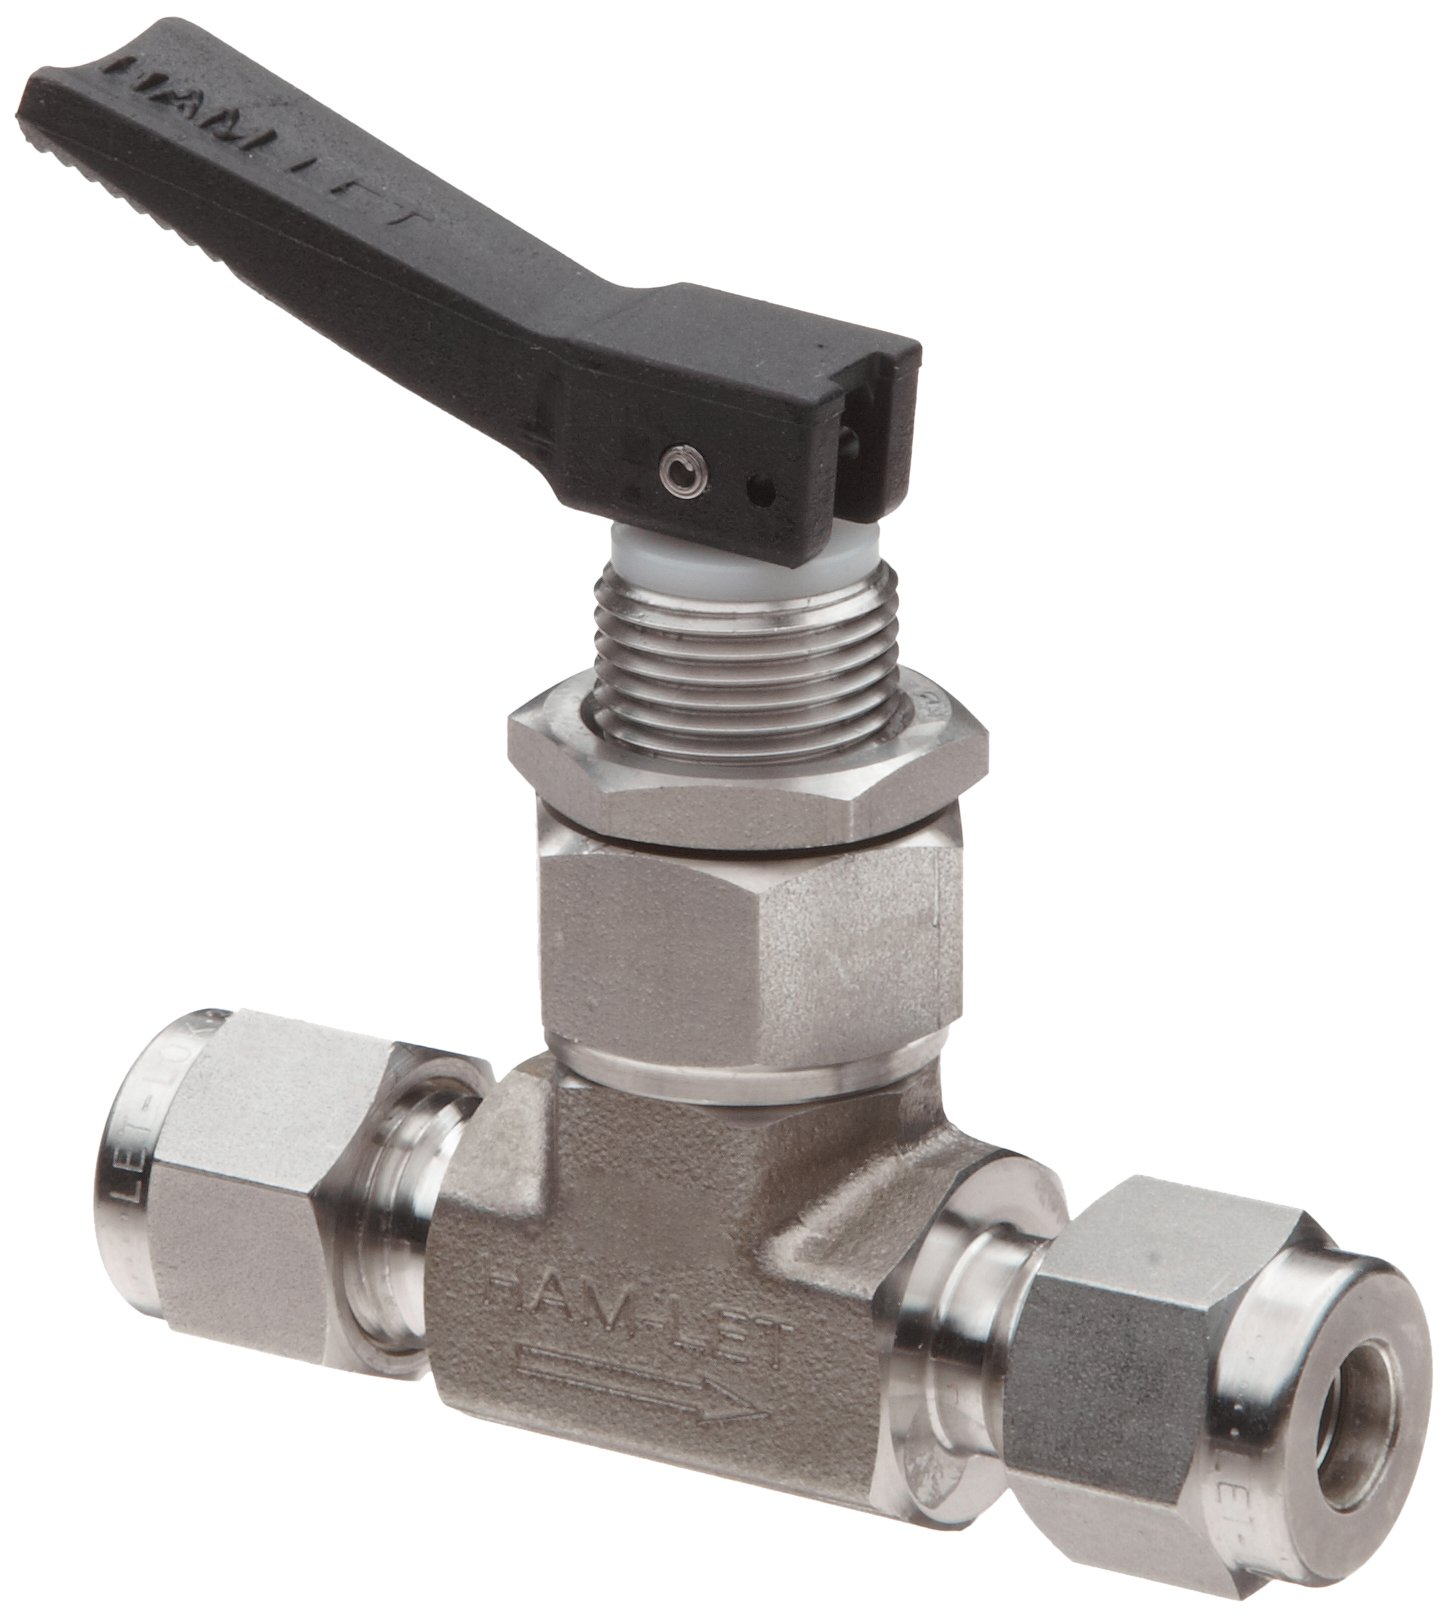 Ham-Let H1200 Series Stainless Steel 316 Toggle Valve, Inline, 1/4'' Let-Lok Fitting by Hamlet (Image #1)